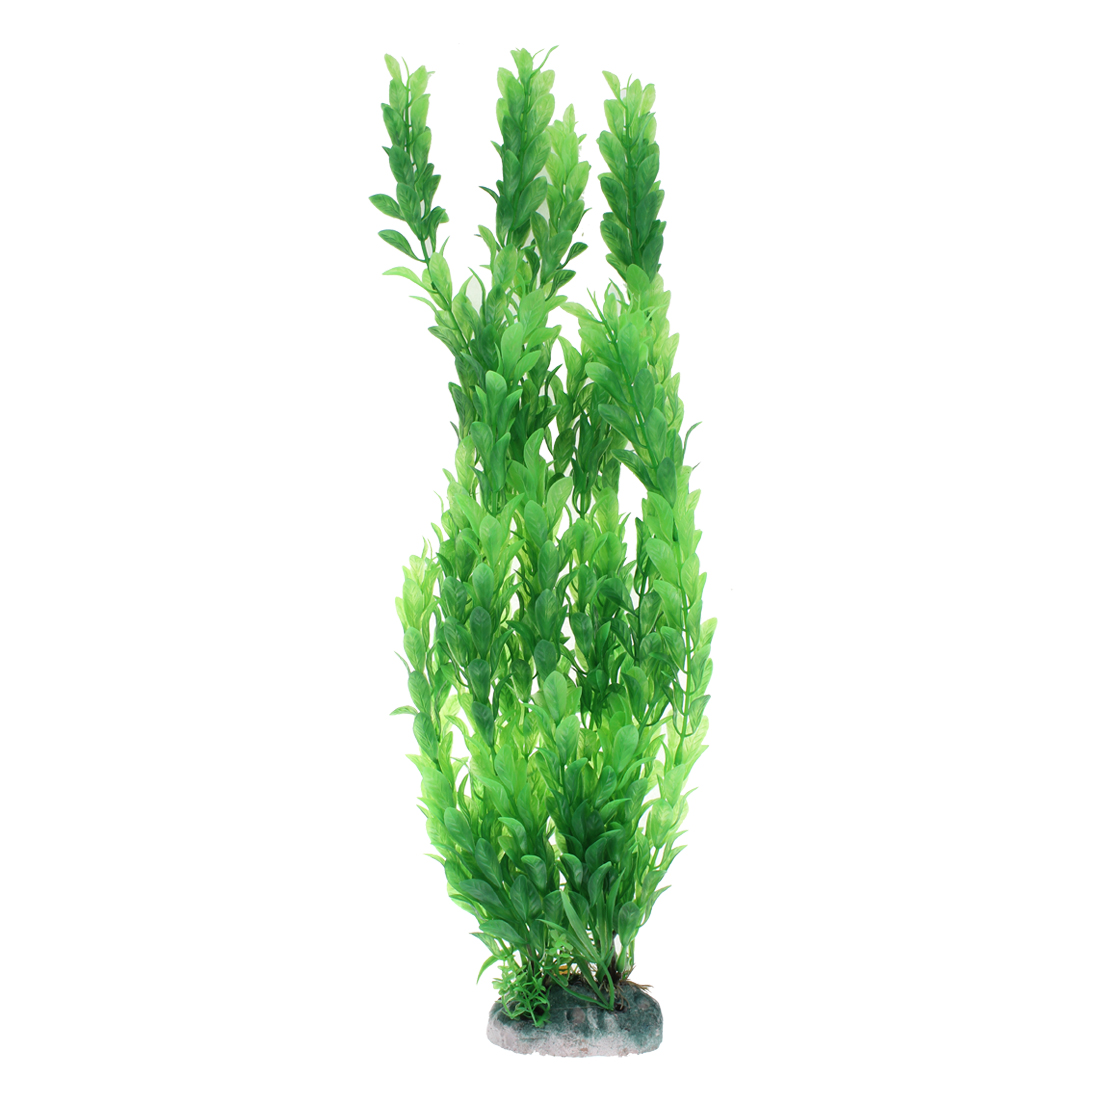 Aquarium Plastic Artificial Water Plant Grass Embellishment Green 46cm Height